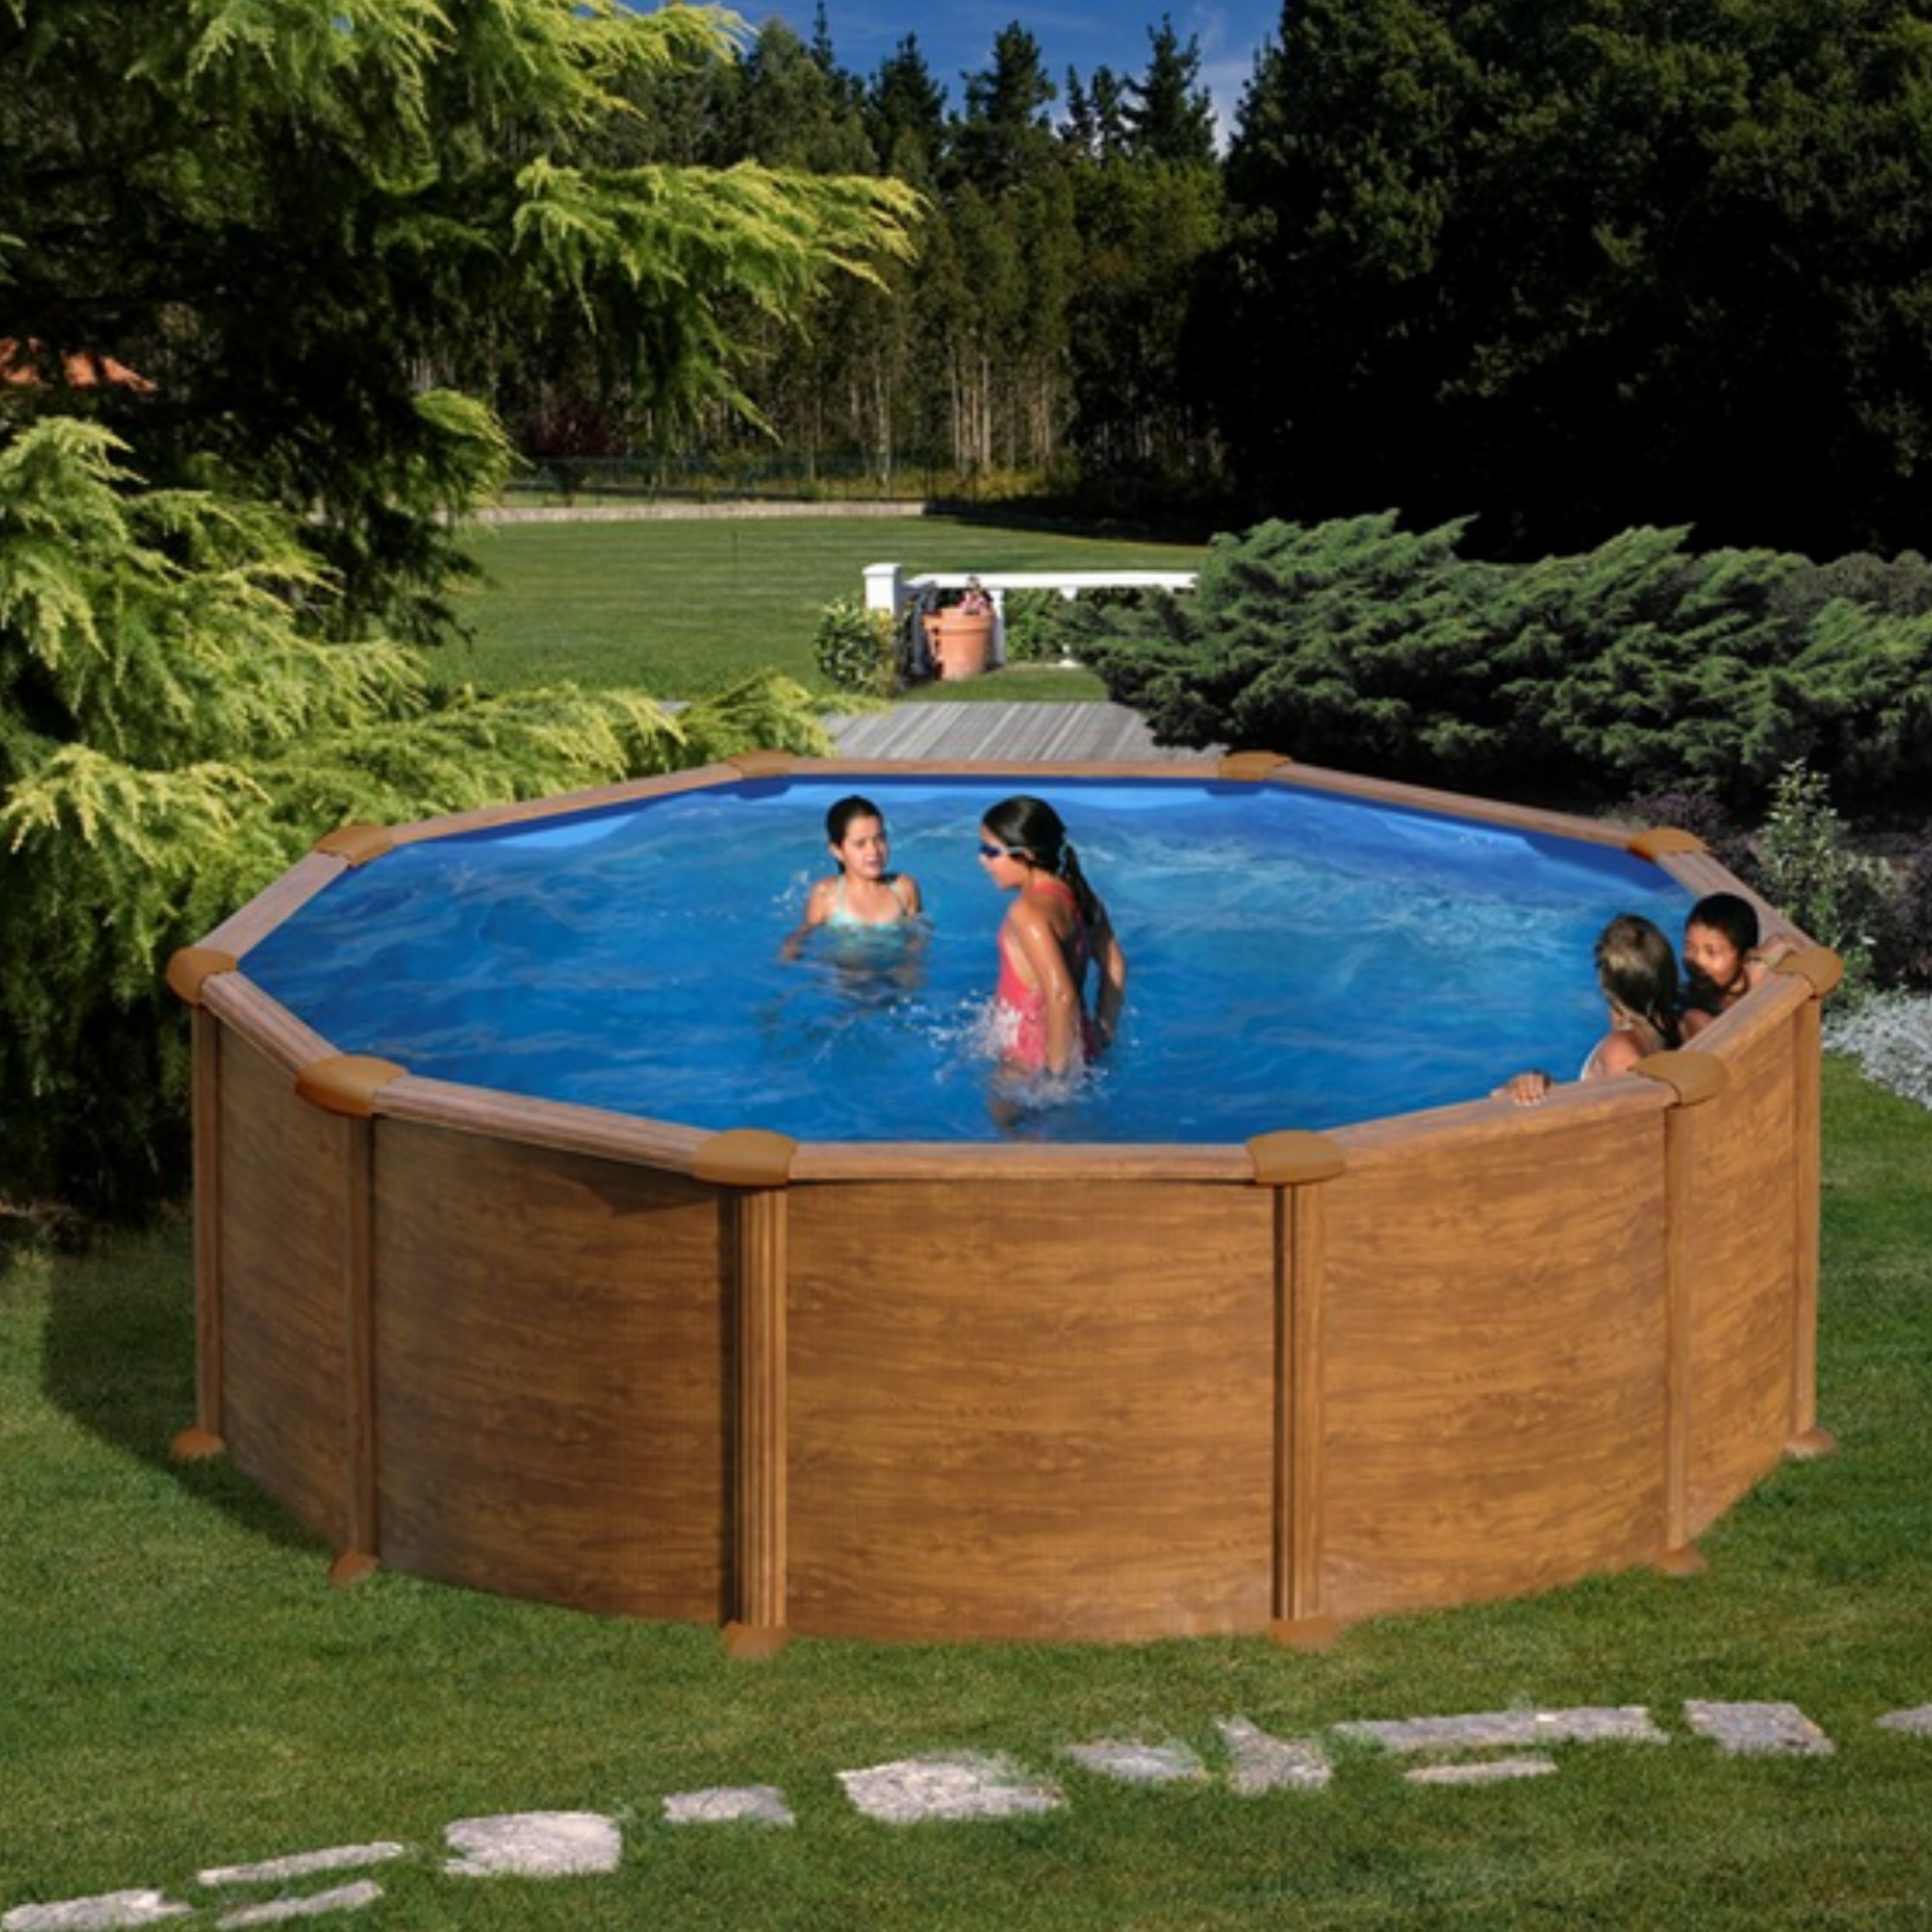 Pool in holzoptik rc25 hitoiro for Hellweg pool